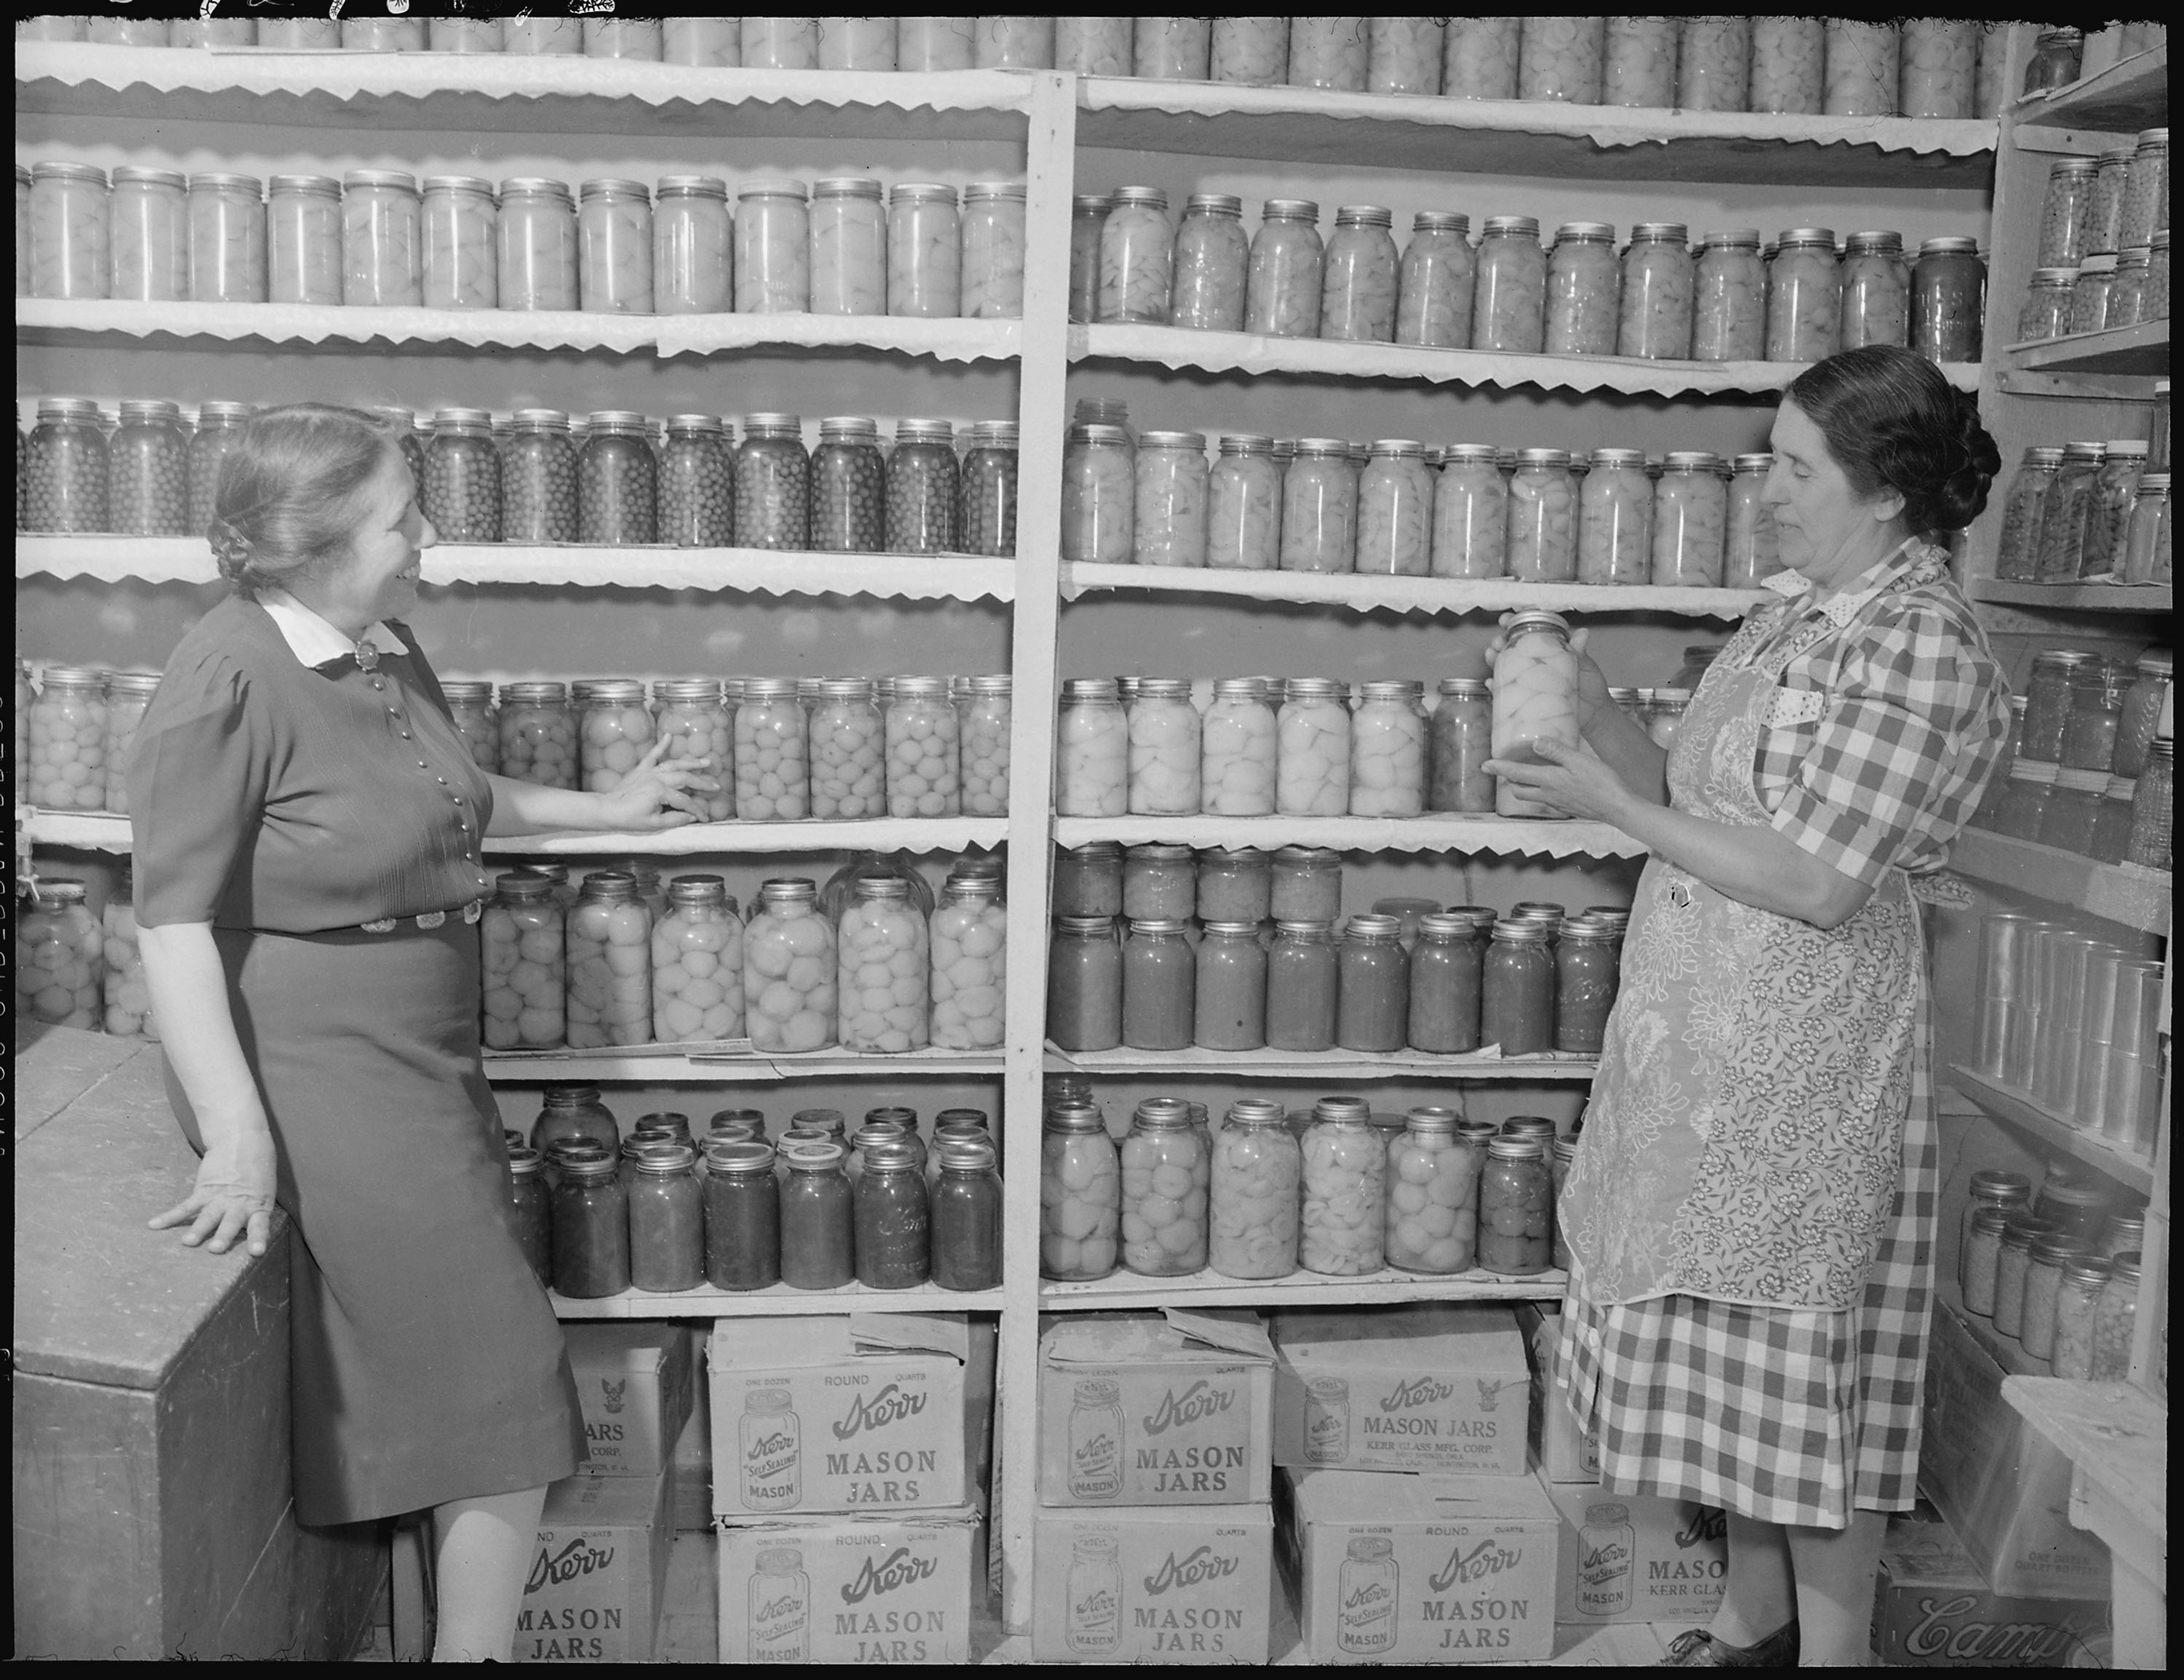 Two women stand by shelves stocked with jars